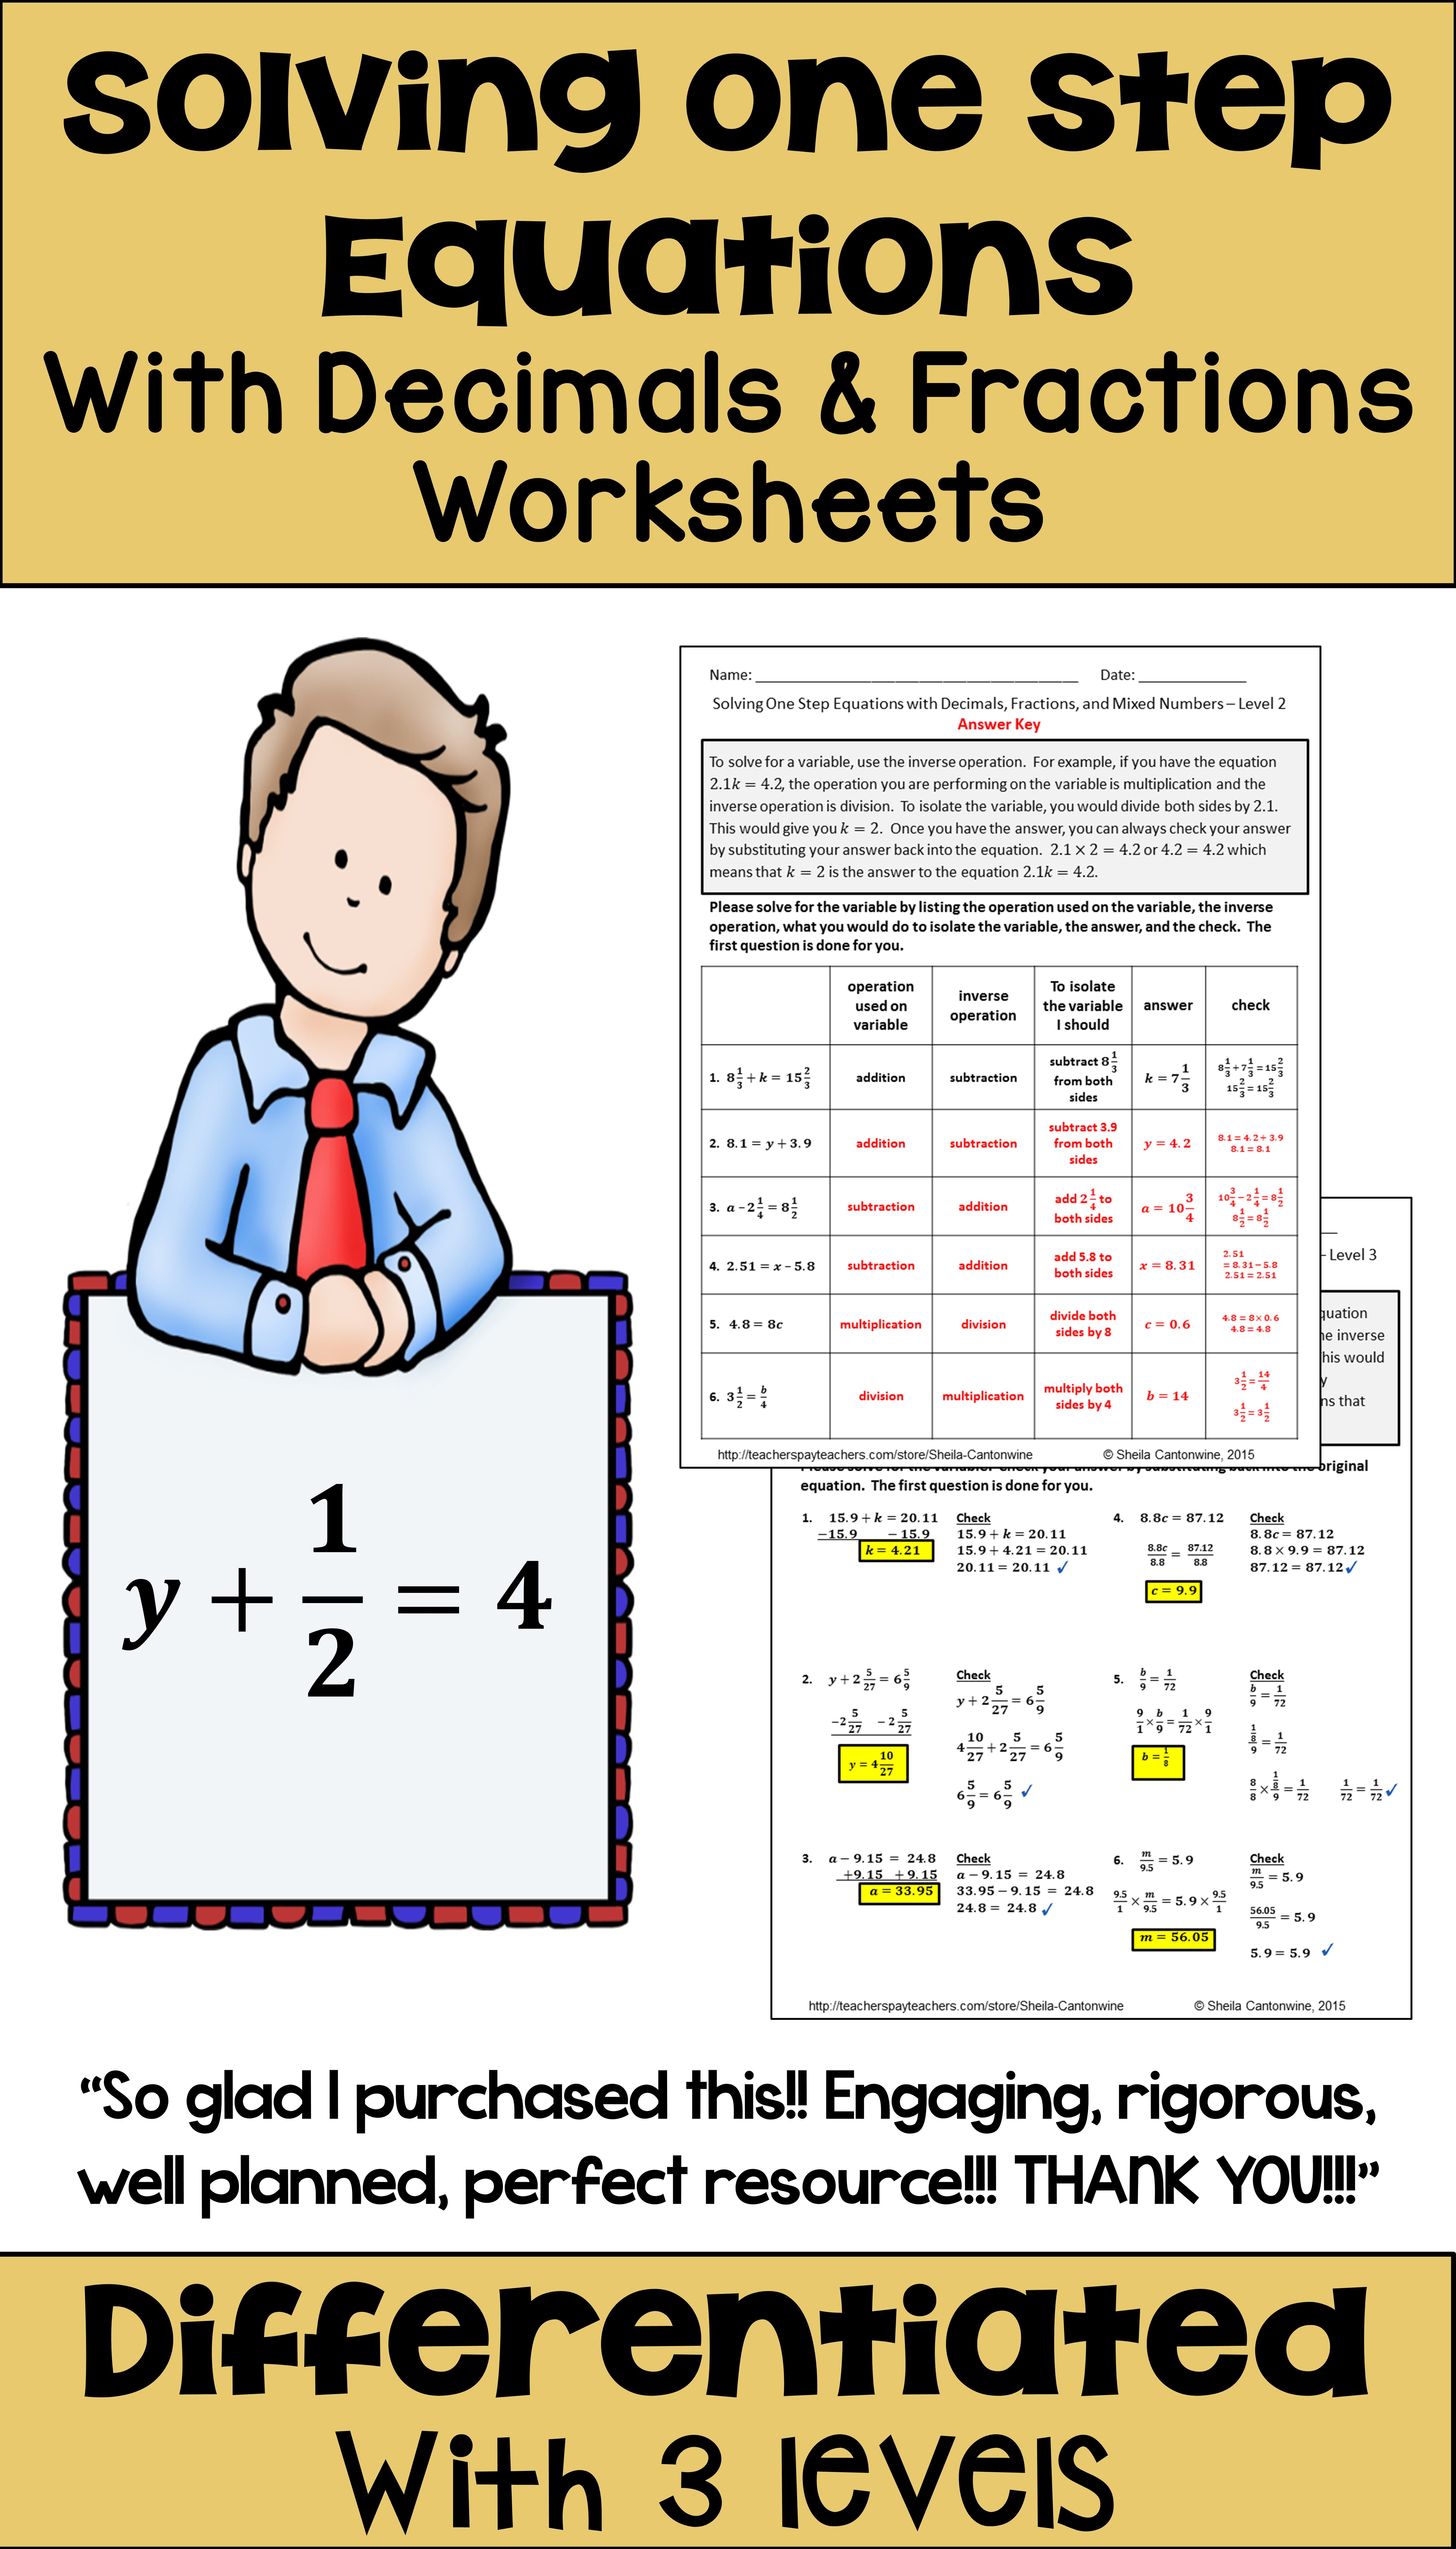 One Step Equations With Fractions And Decimals